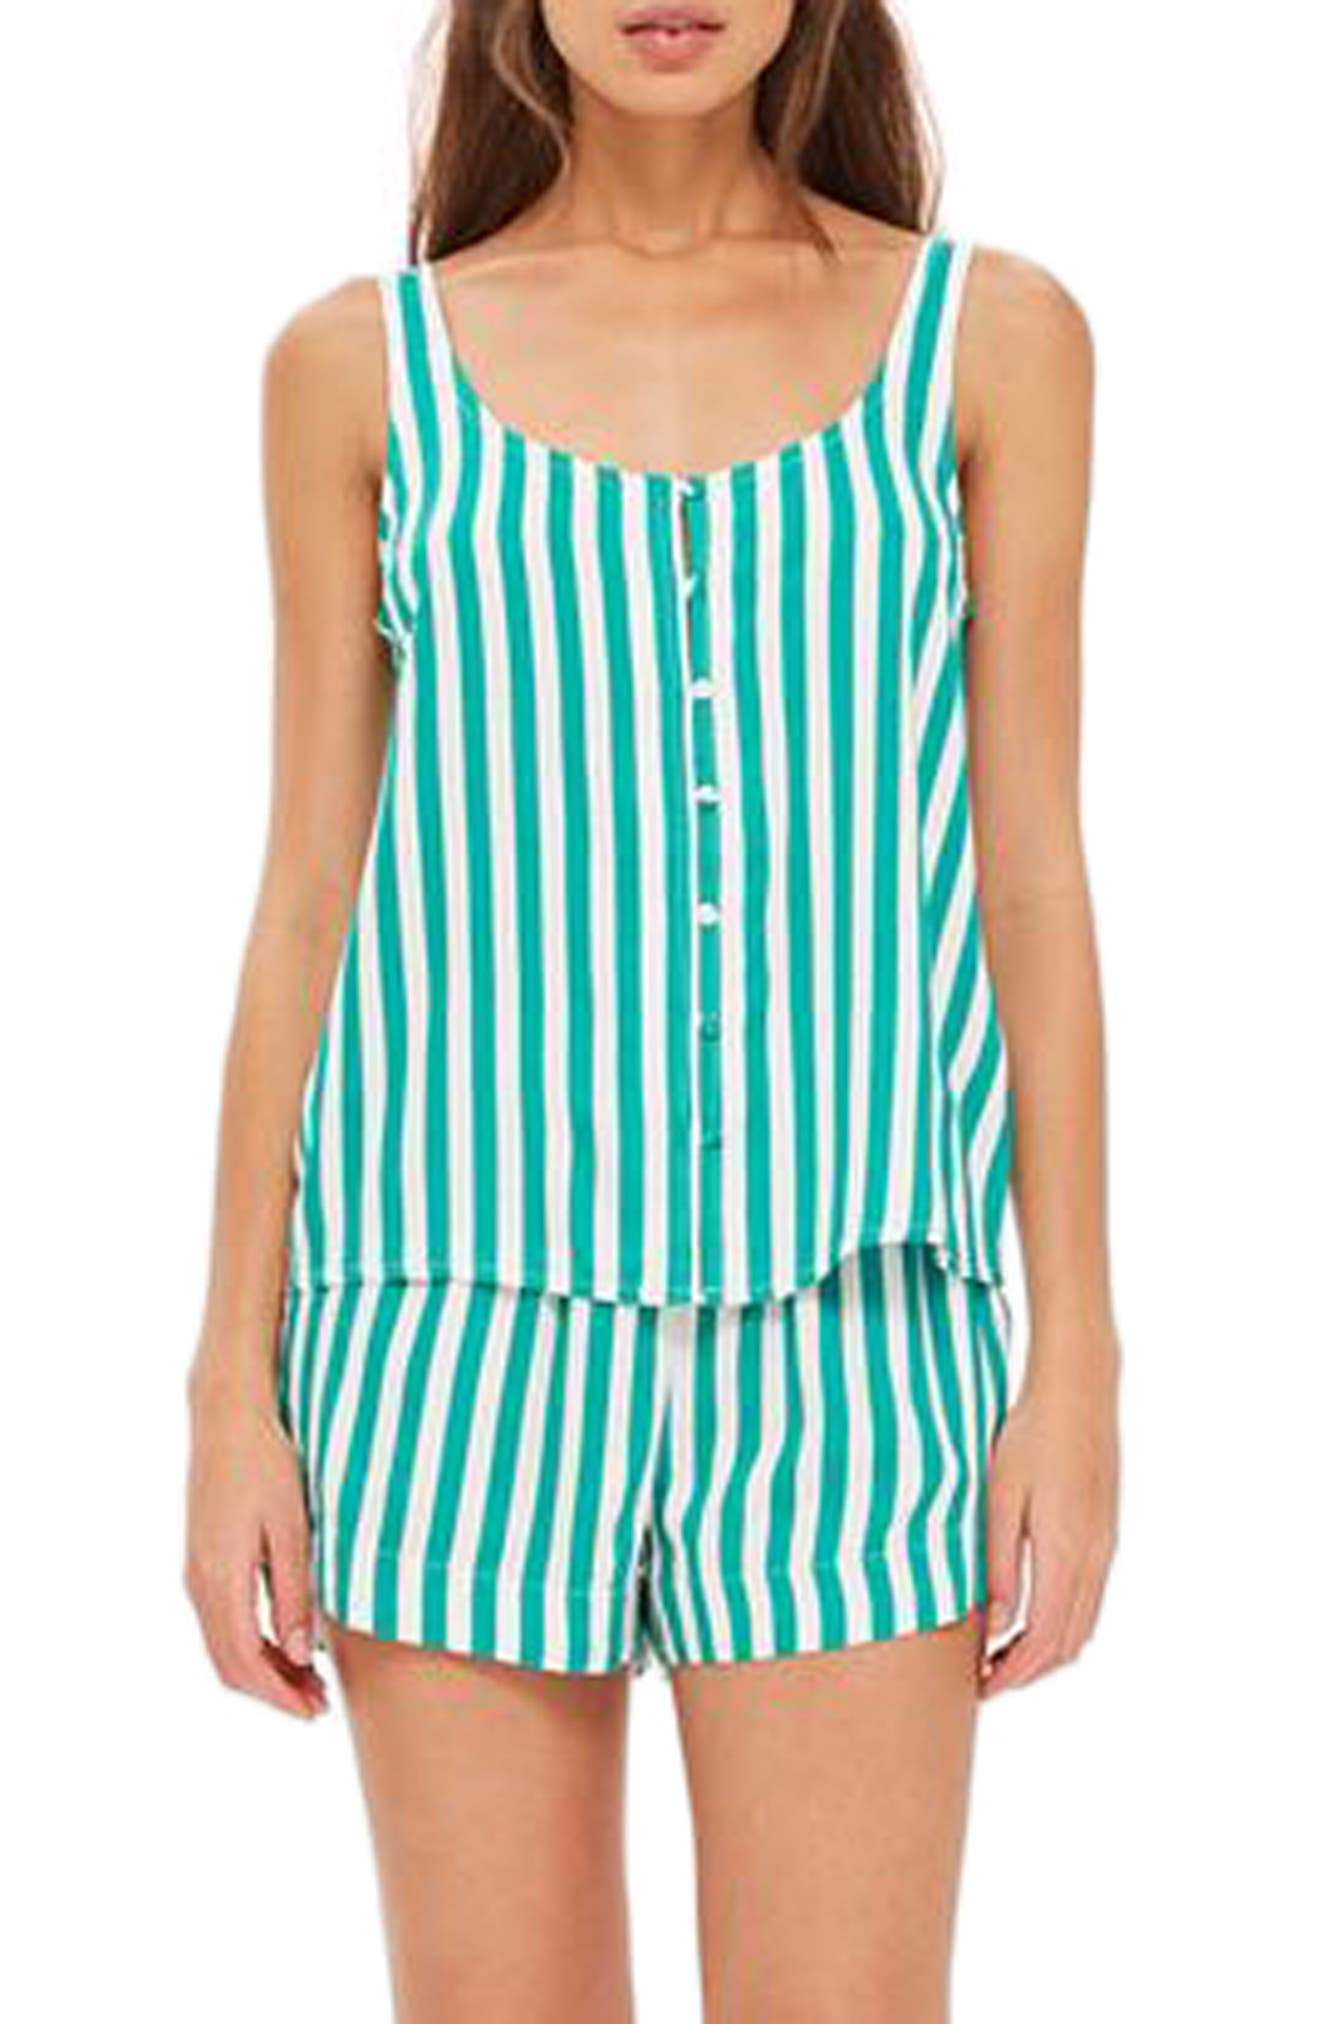 Humbug Stripe Short Pajamas,                         Main,                         color, 300